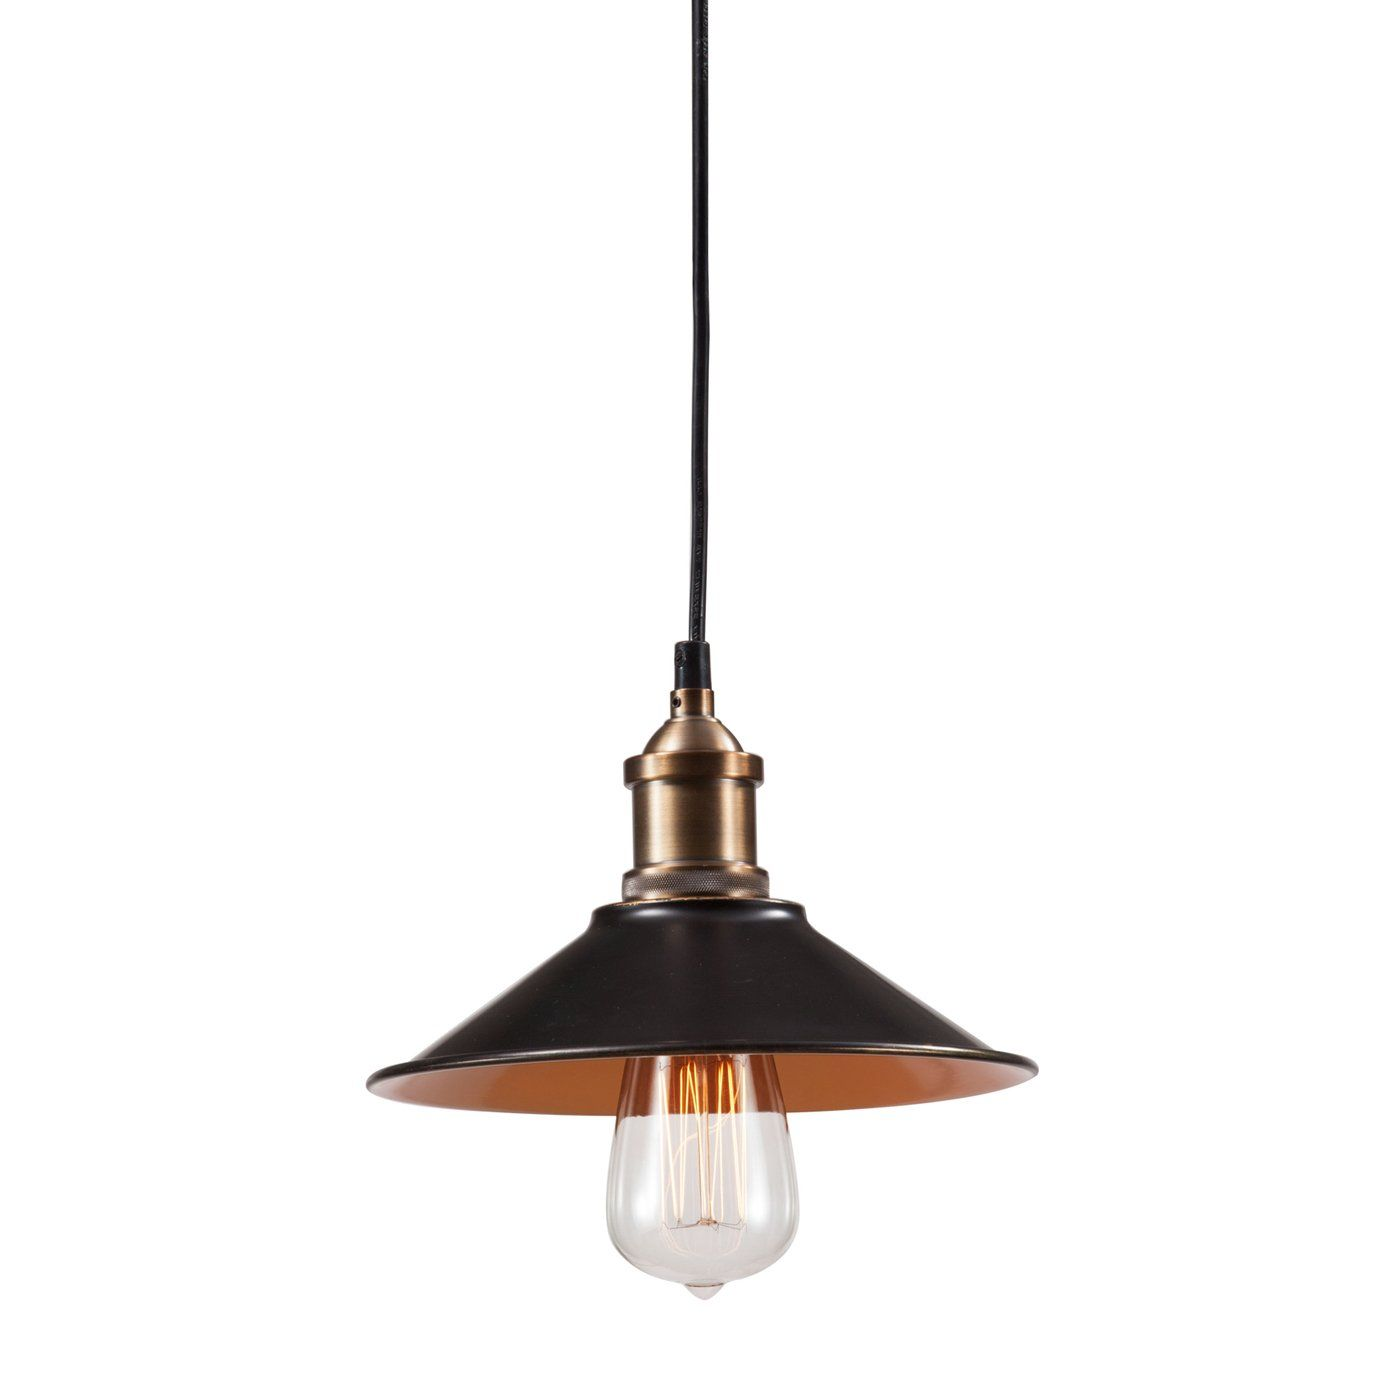 Zuo Modern Lighting Canada Zuo Modern 98270 Metaborite Ceiling Lamp Lowe S Canada